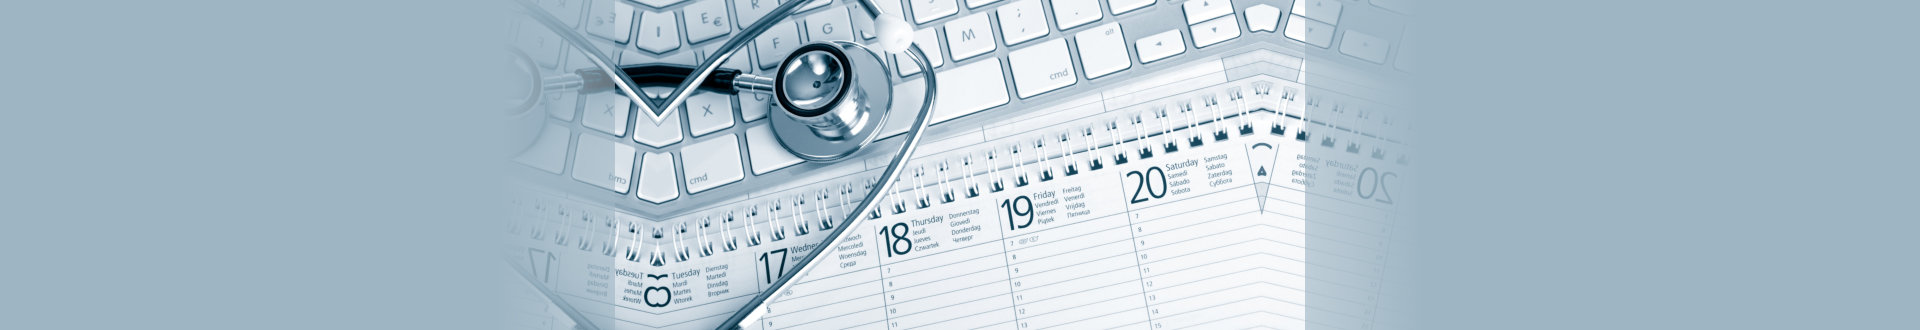 stethoscope and calendar